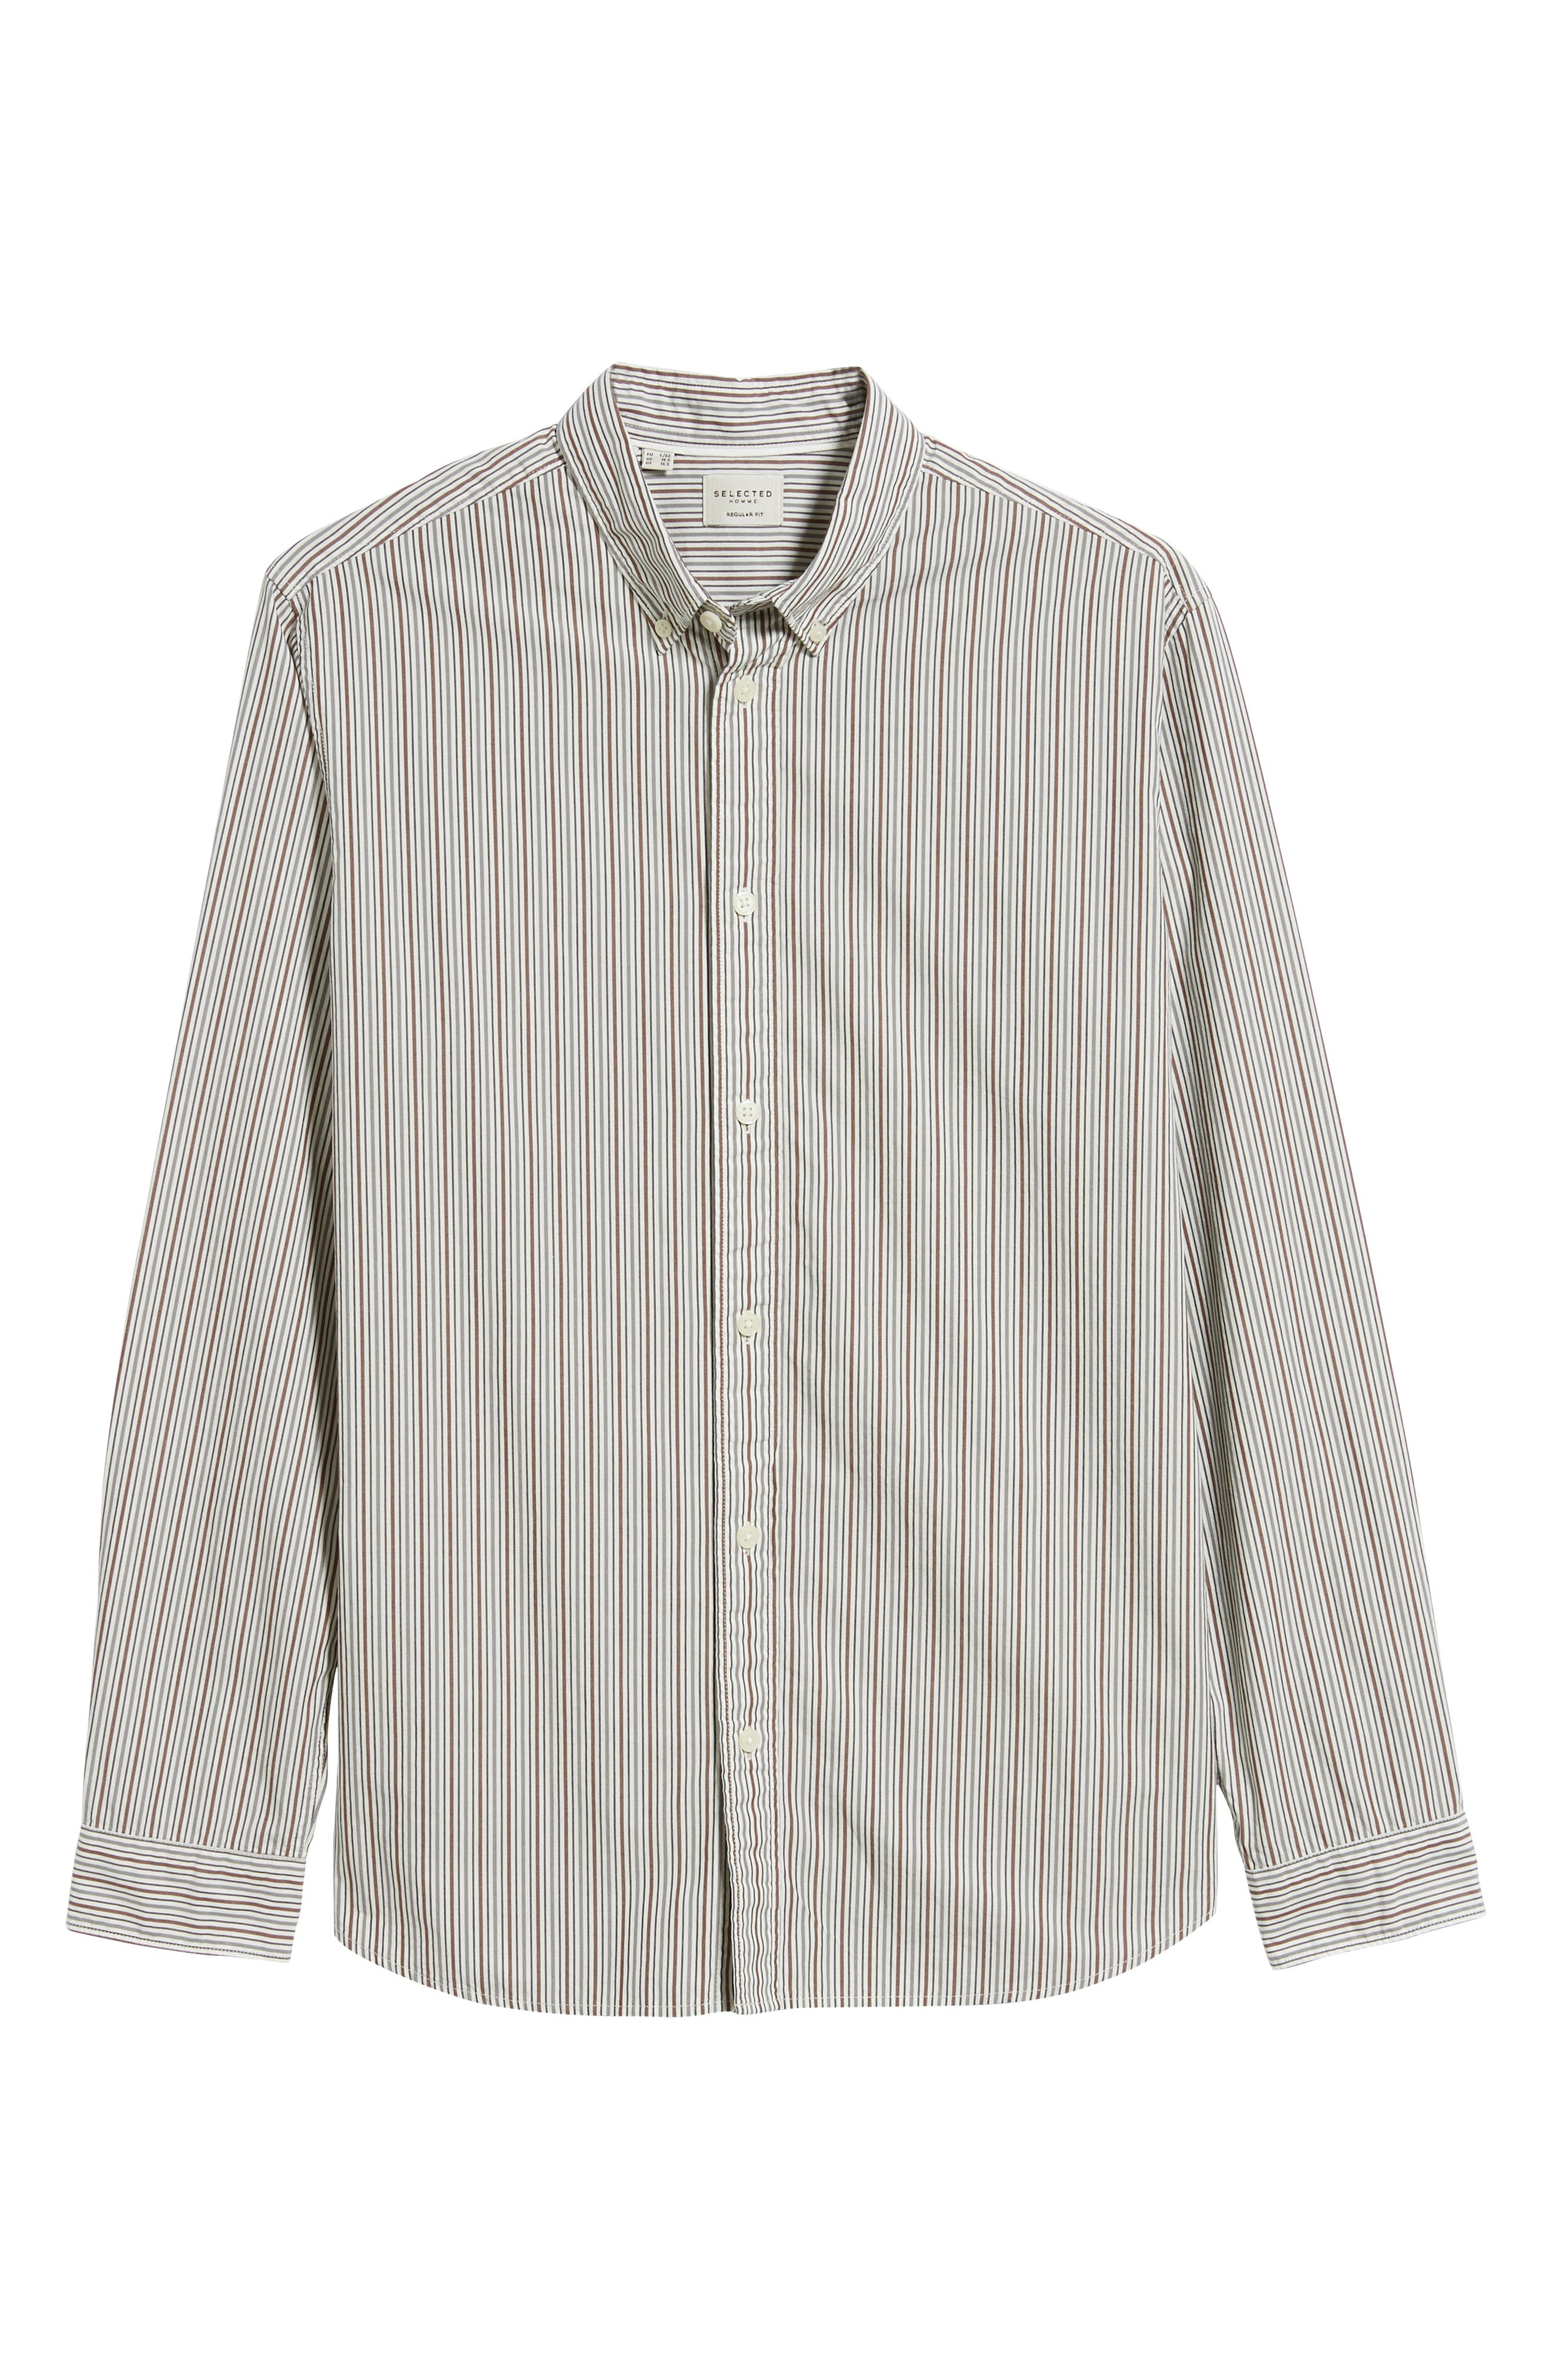 Carlo Regular Fit Stripe Sport Shirt,                             Alternate thumbnail 5, color,                             QUIET SHADE STRIPES